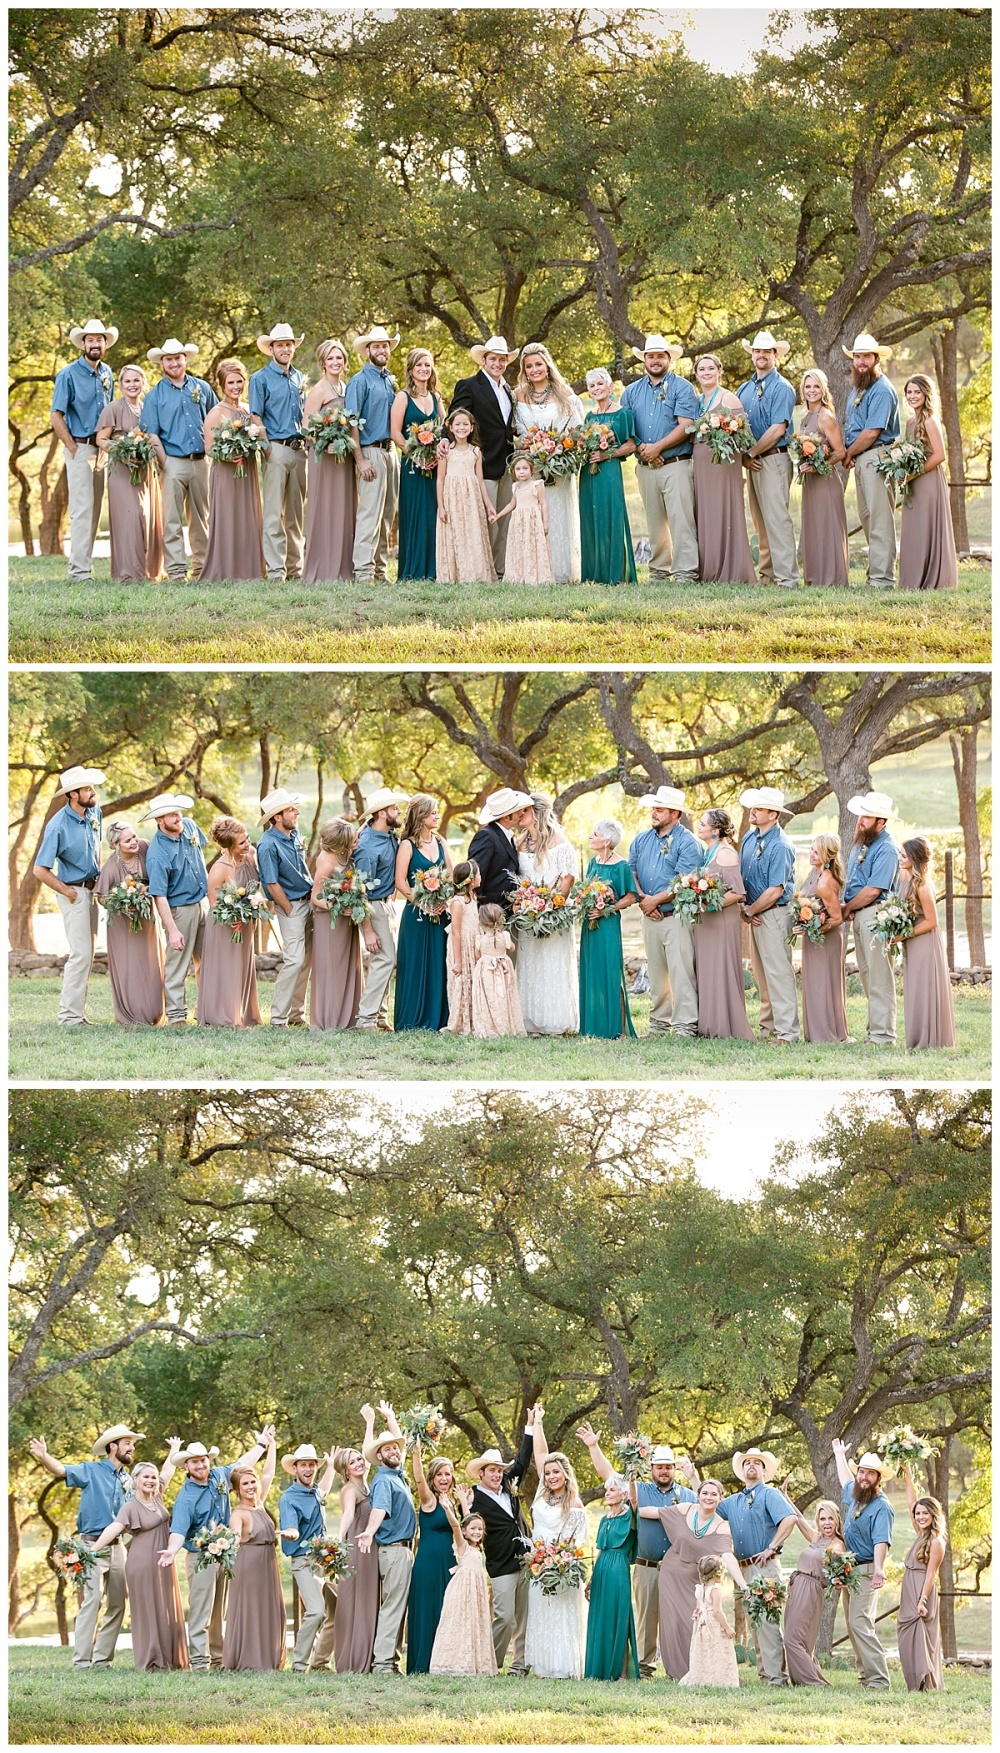 Texas-Wedding-Photographer-Braded-T-Ranch-Kendalia-Bride-Groom-Southwestern-Style-Carly-Barton-Photography-Vogt_0048.jpg